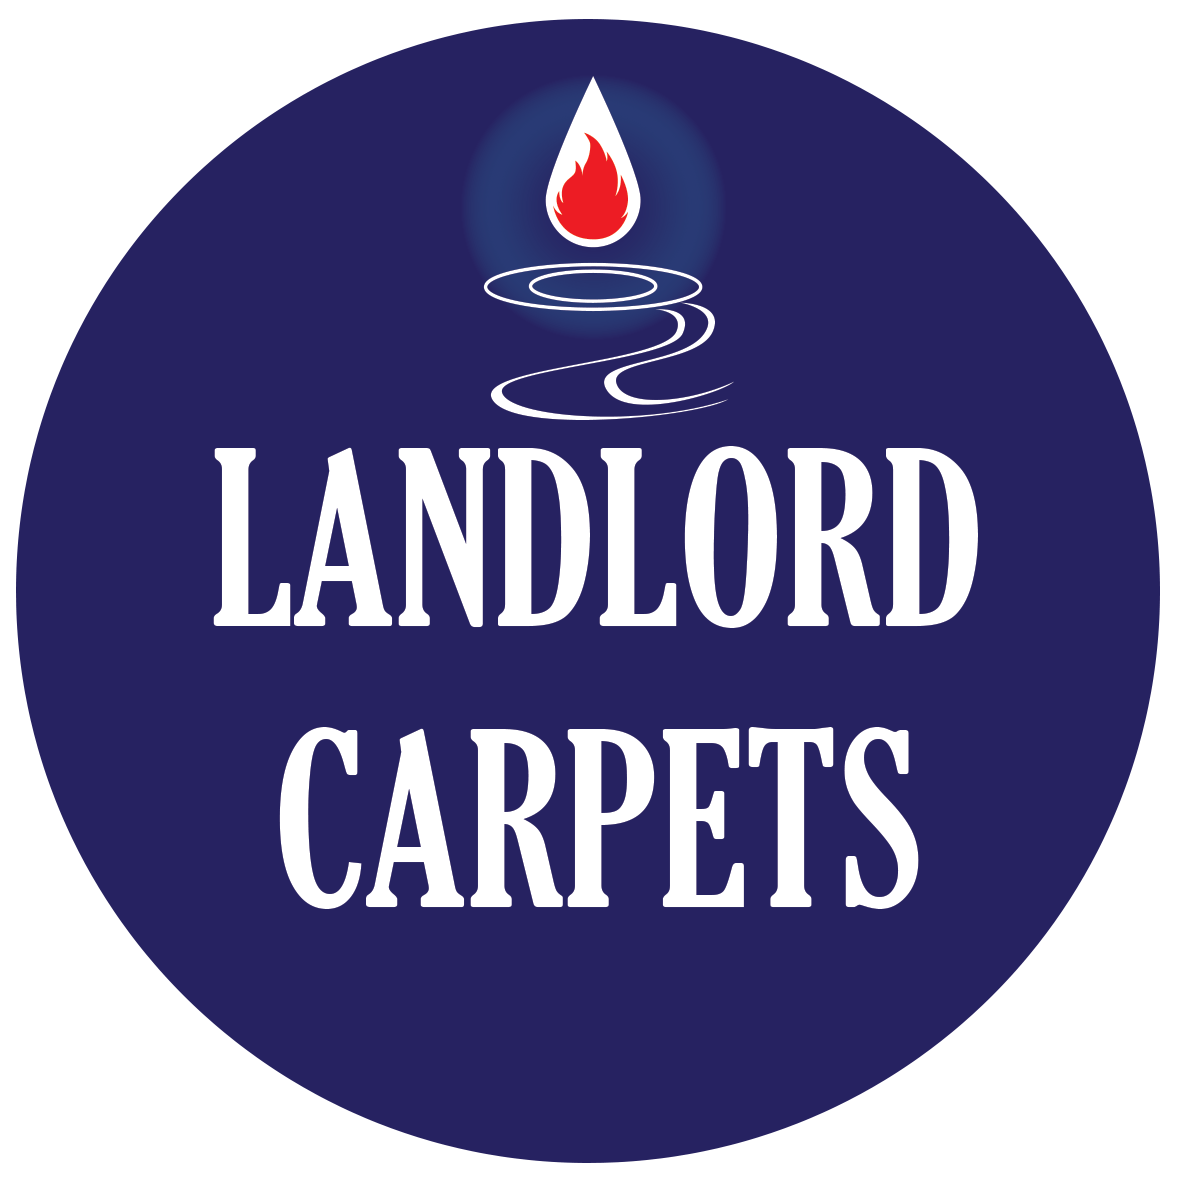 Landlord-Carpet-Cleaning-Services-Upholstery-Cleaning-Weston-super-Mare-Somerset